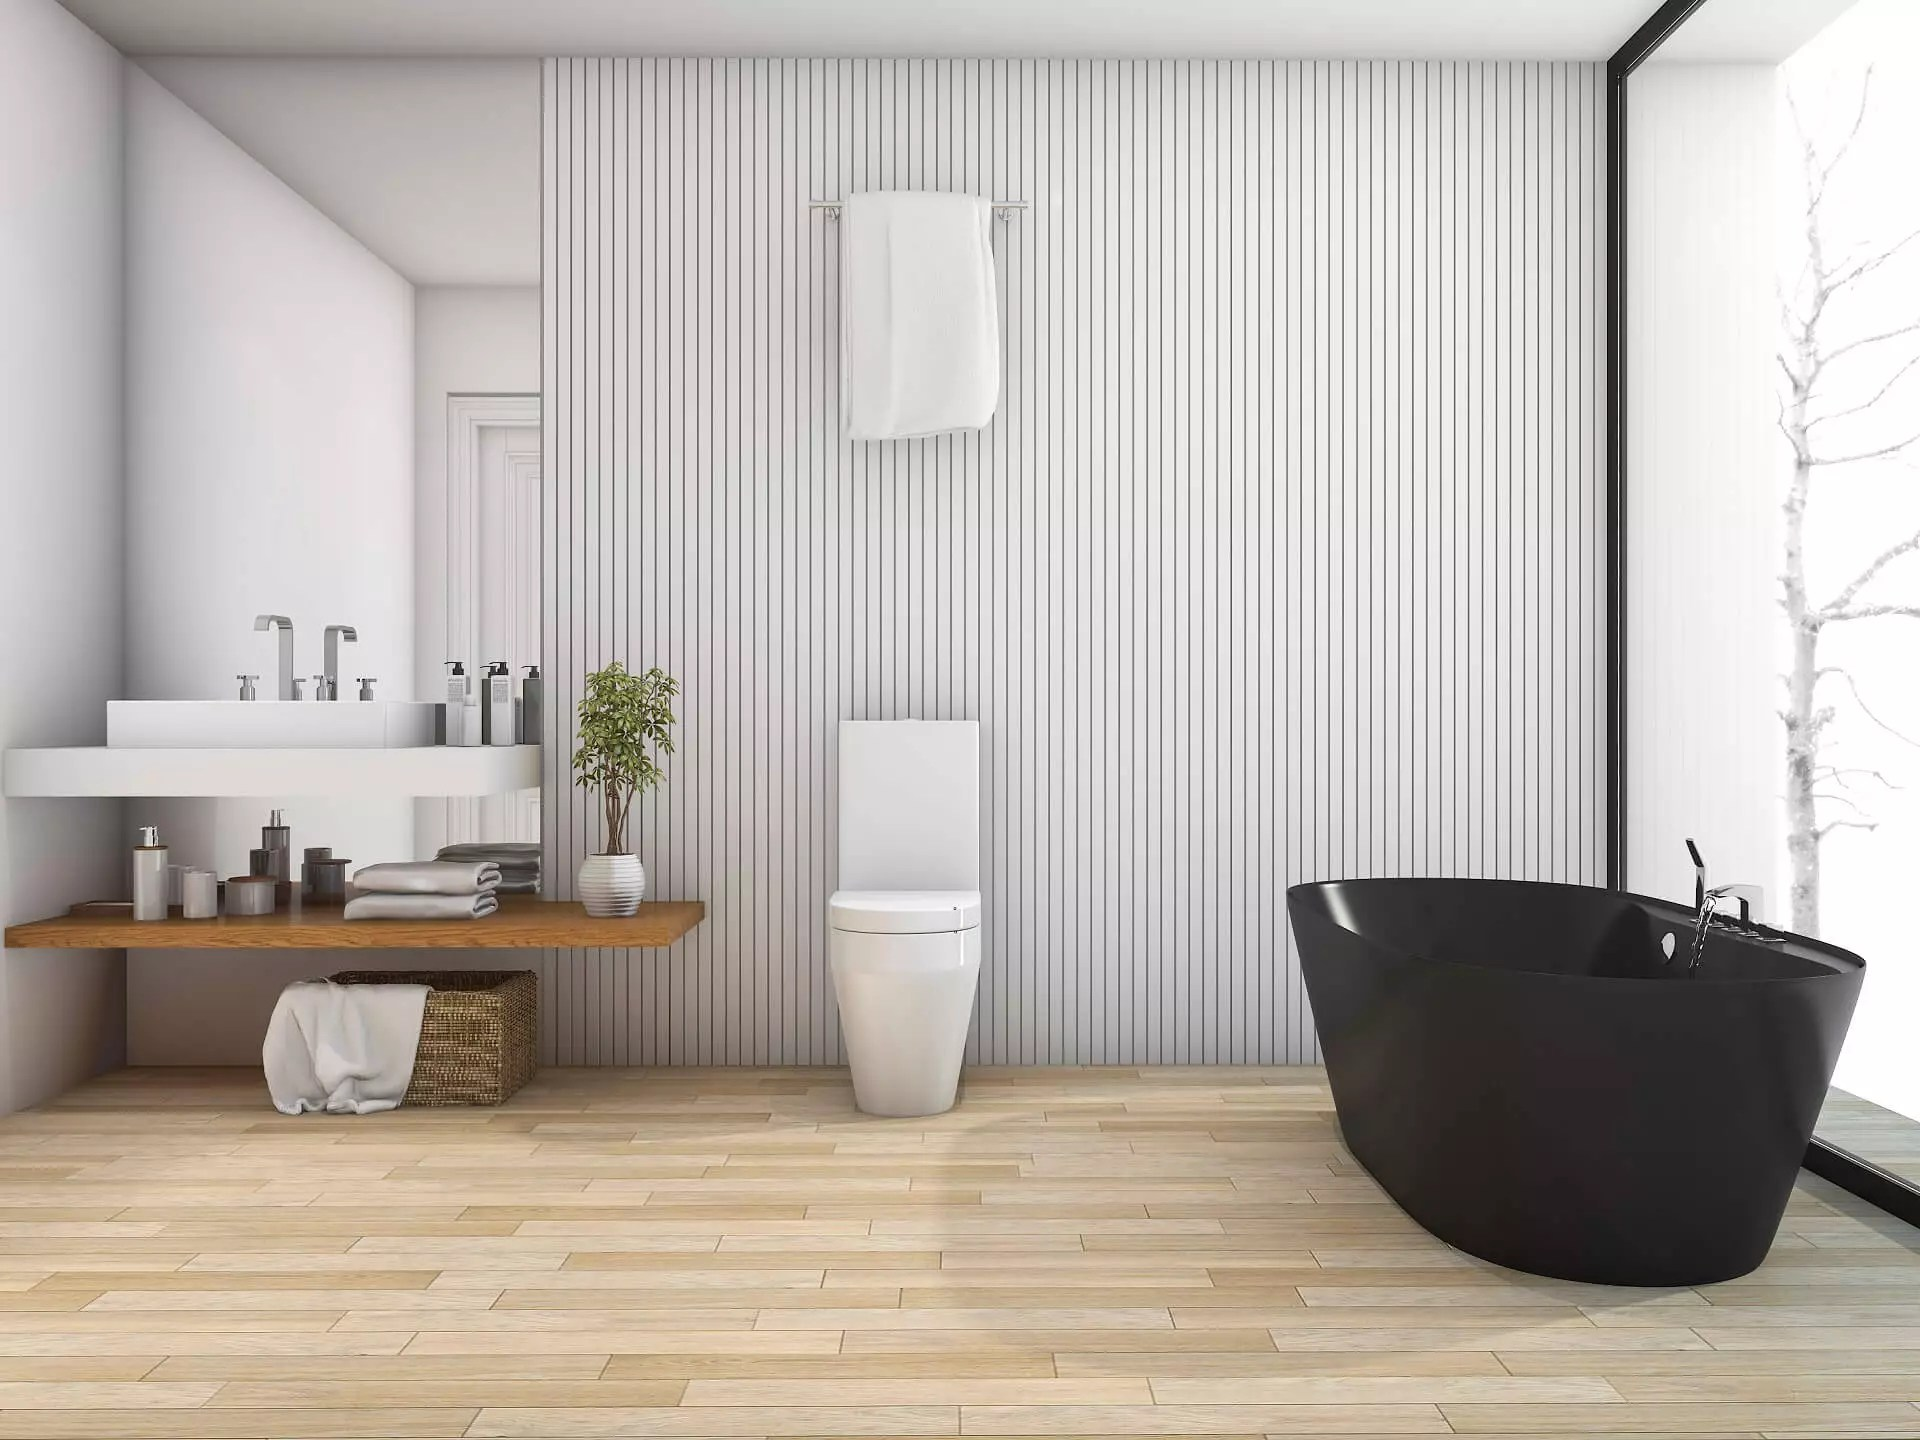 Bathroom Cladding Panels For Walls And Ceiling Types Advantages And Recommendations Uk Hackrea